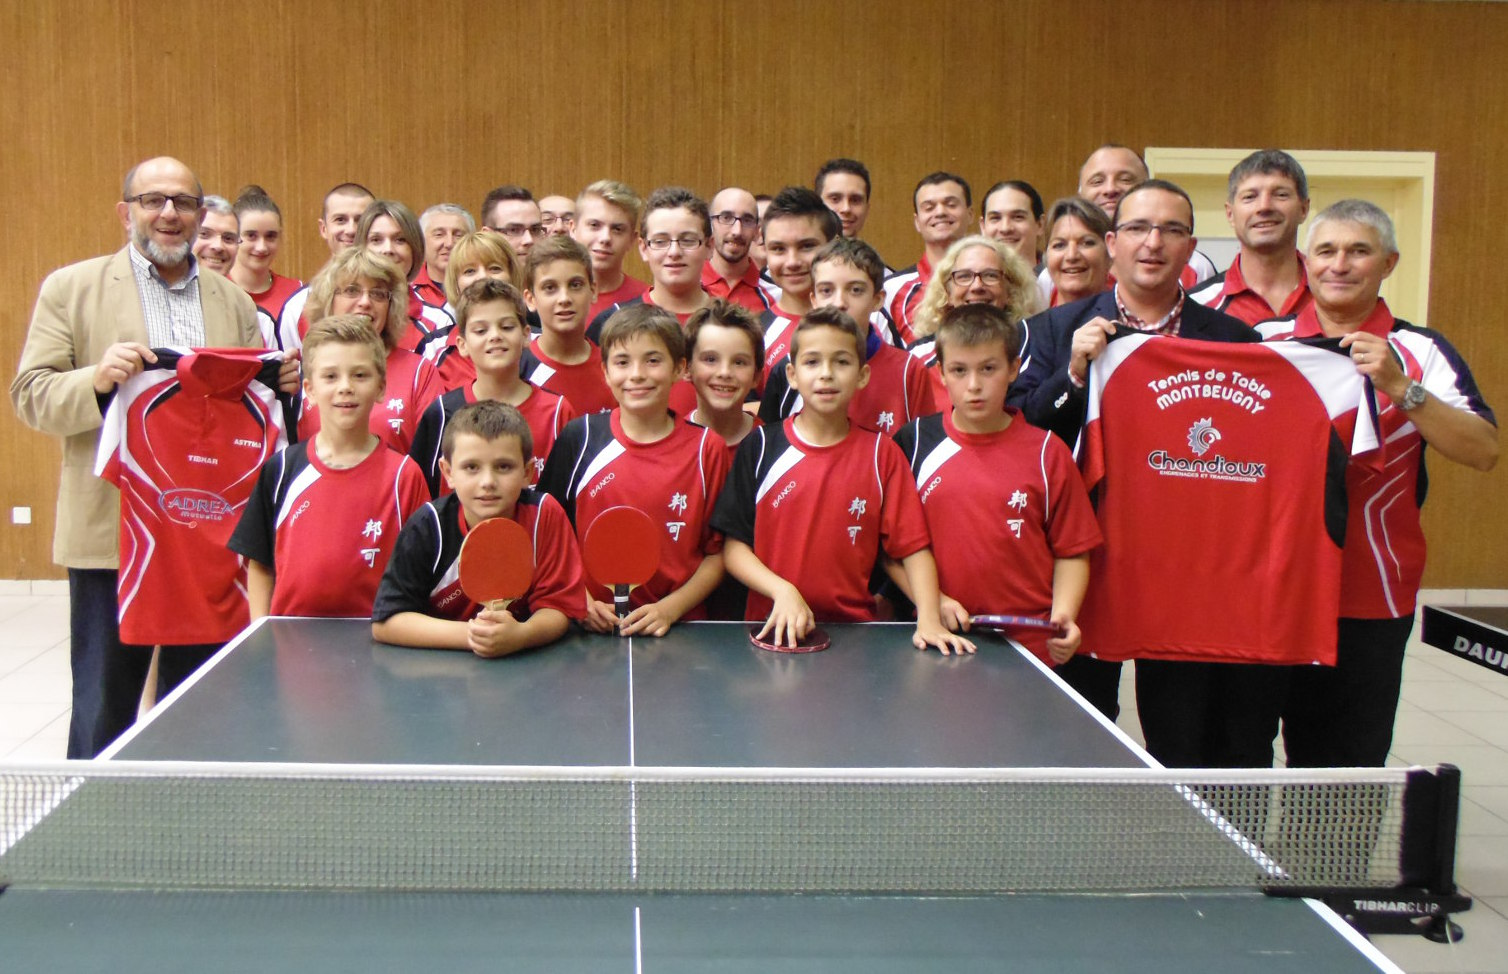 club - maillots Association Sportive Tennis de Table Montbeugny Auvergne ASTTMA ASTTM